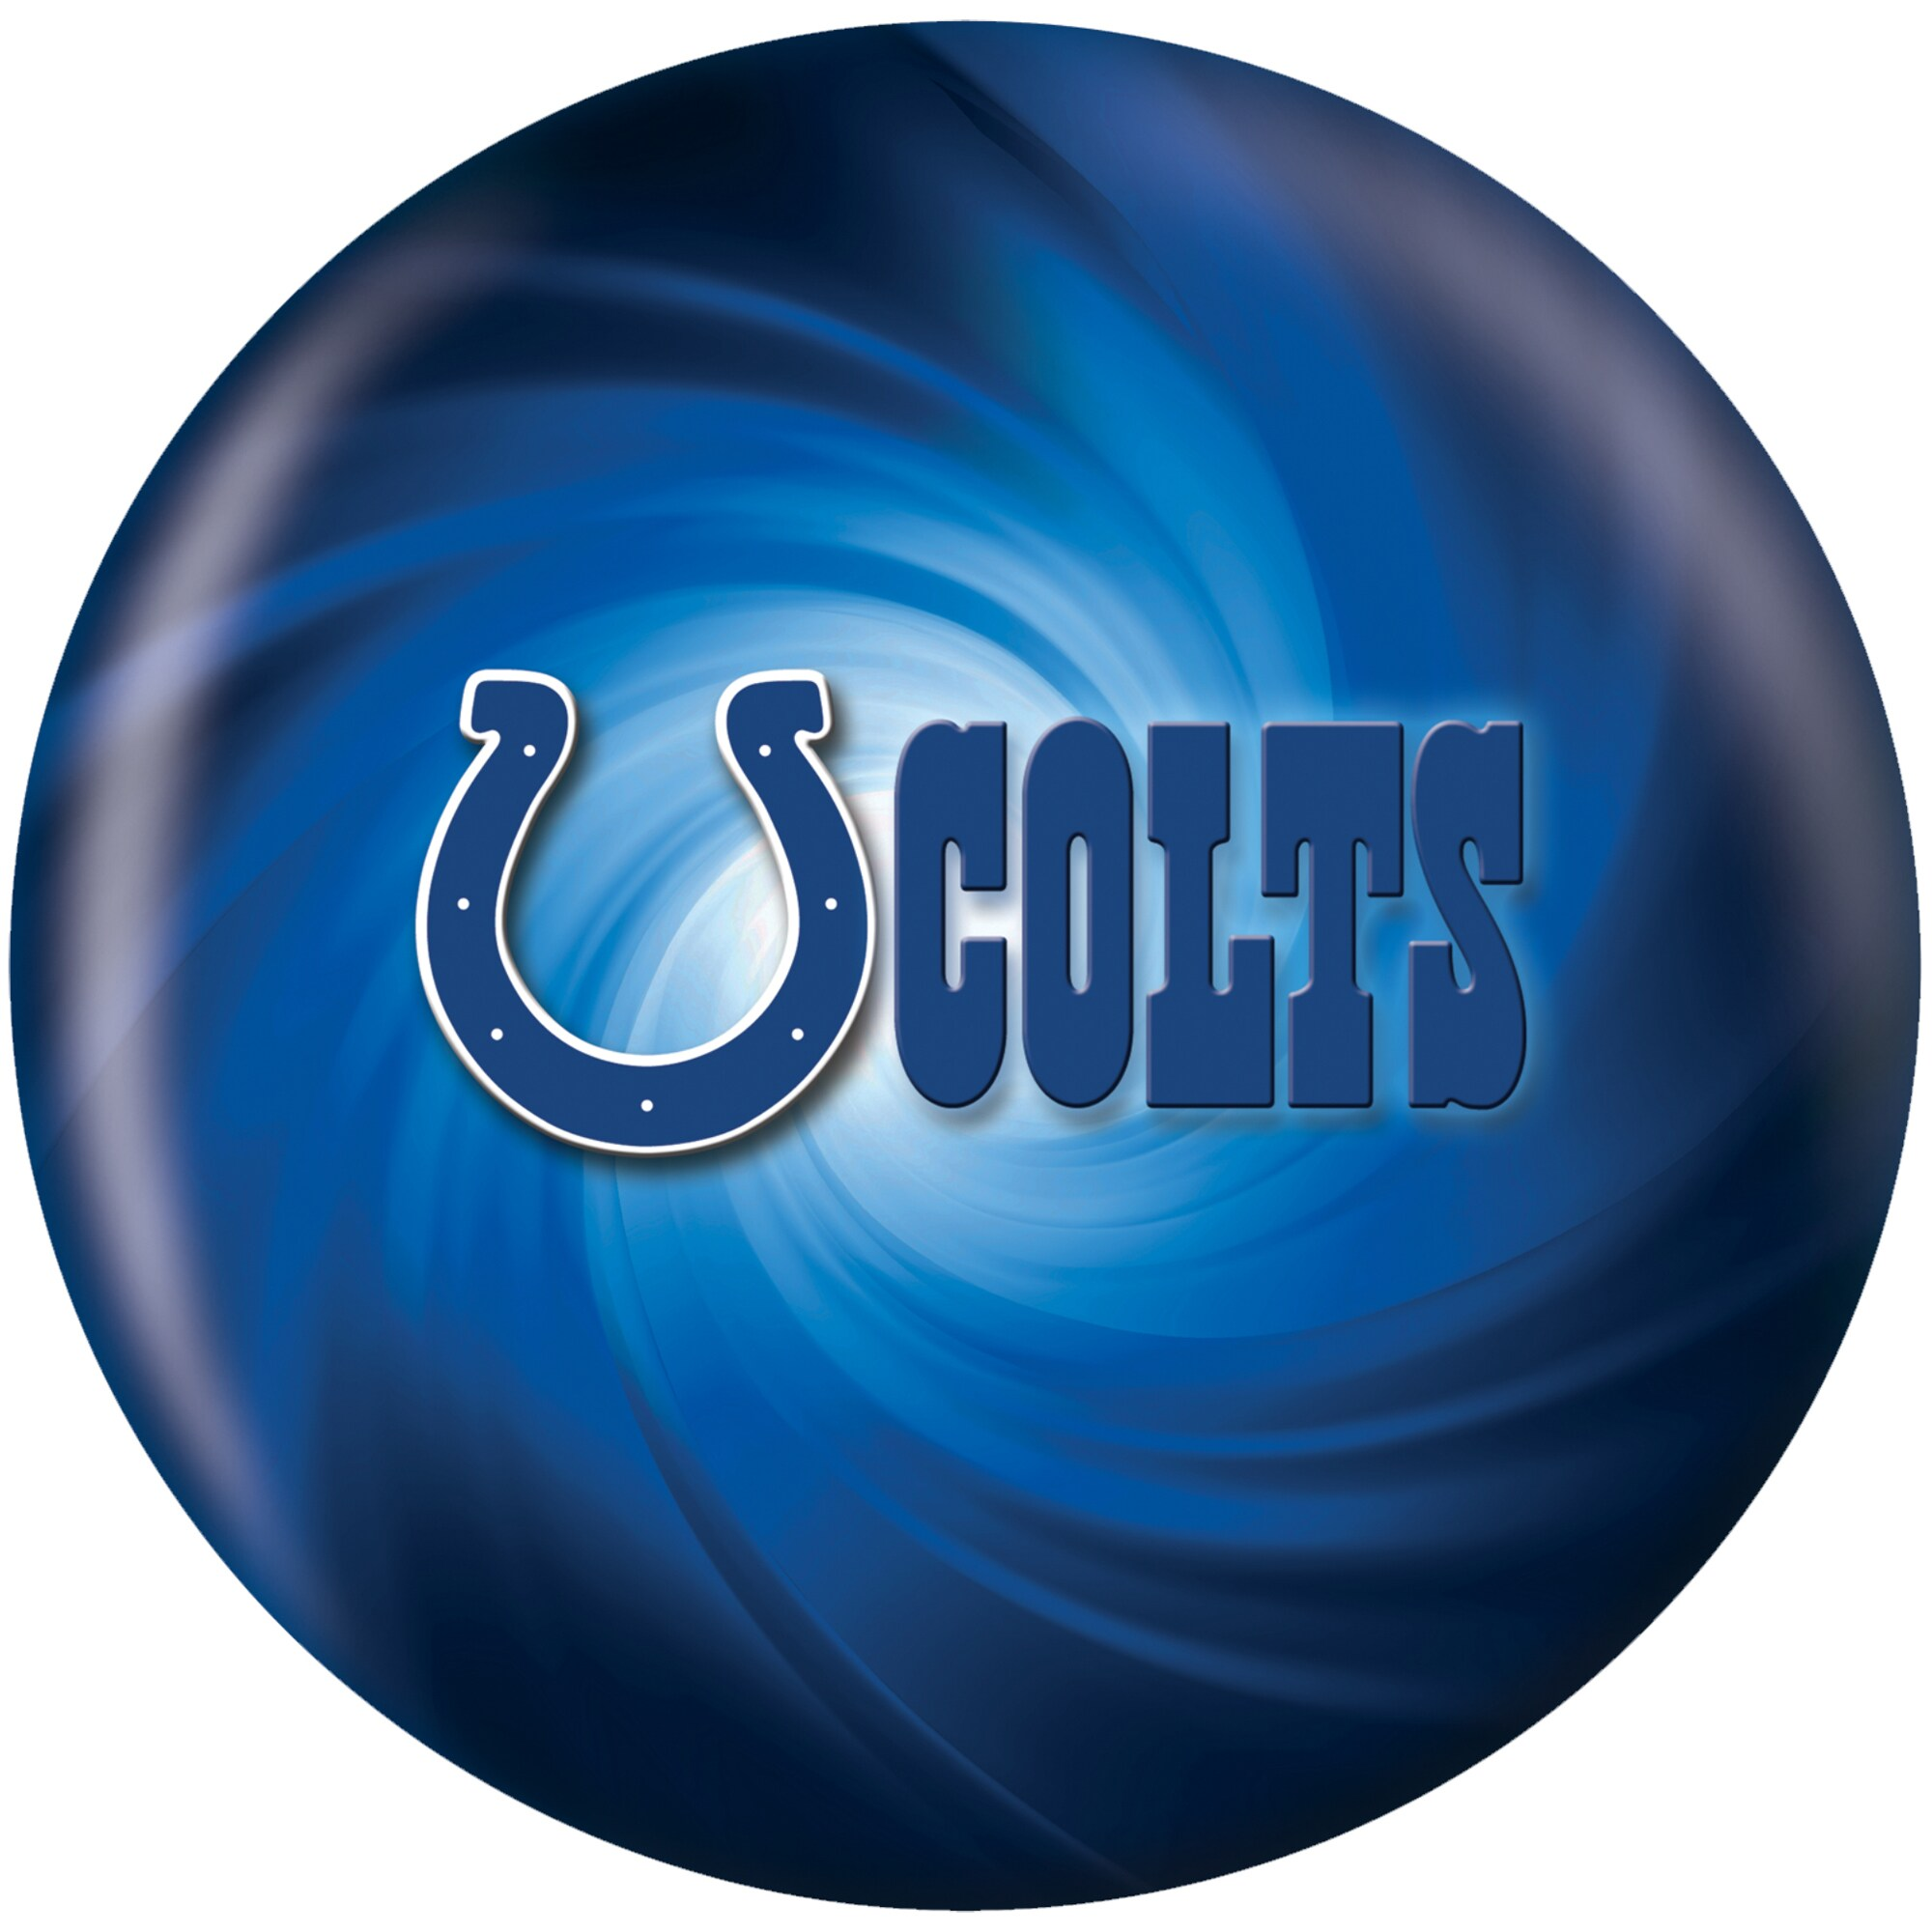 Indianapolis Colts Bowling Ball